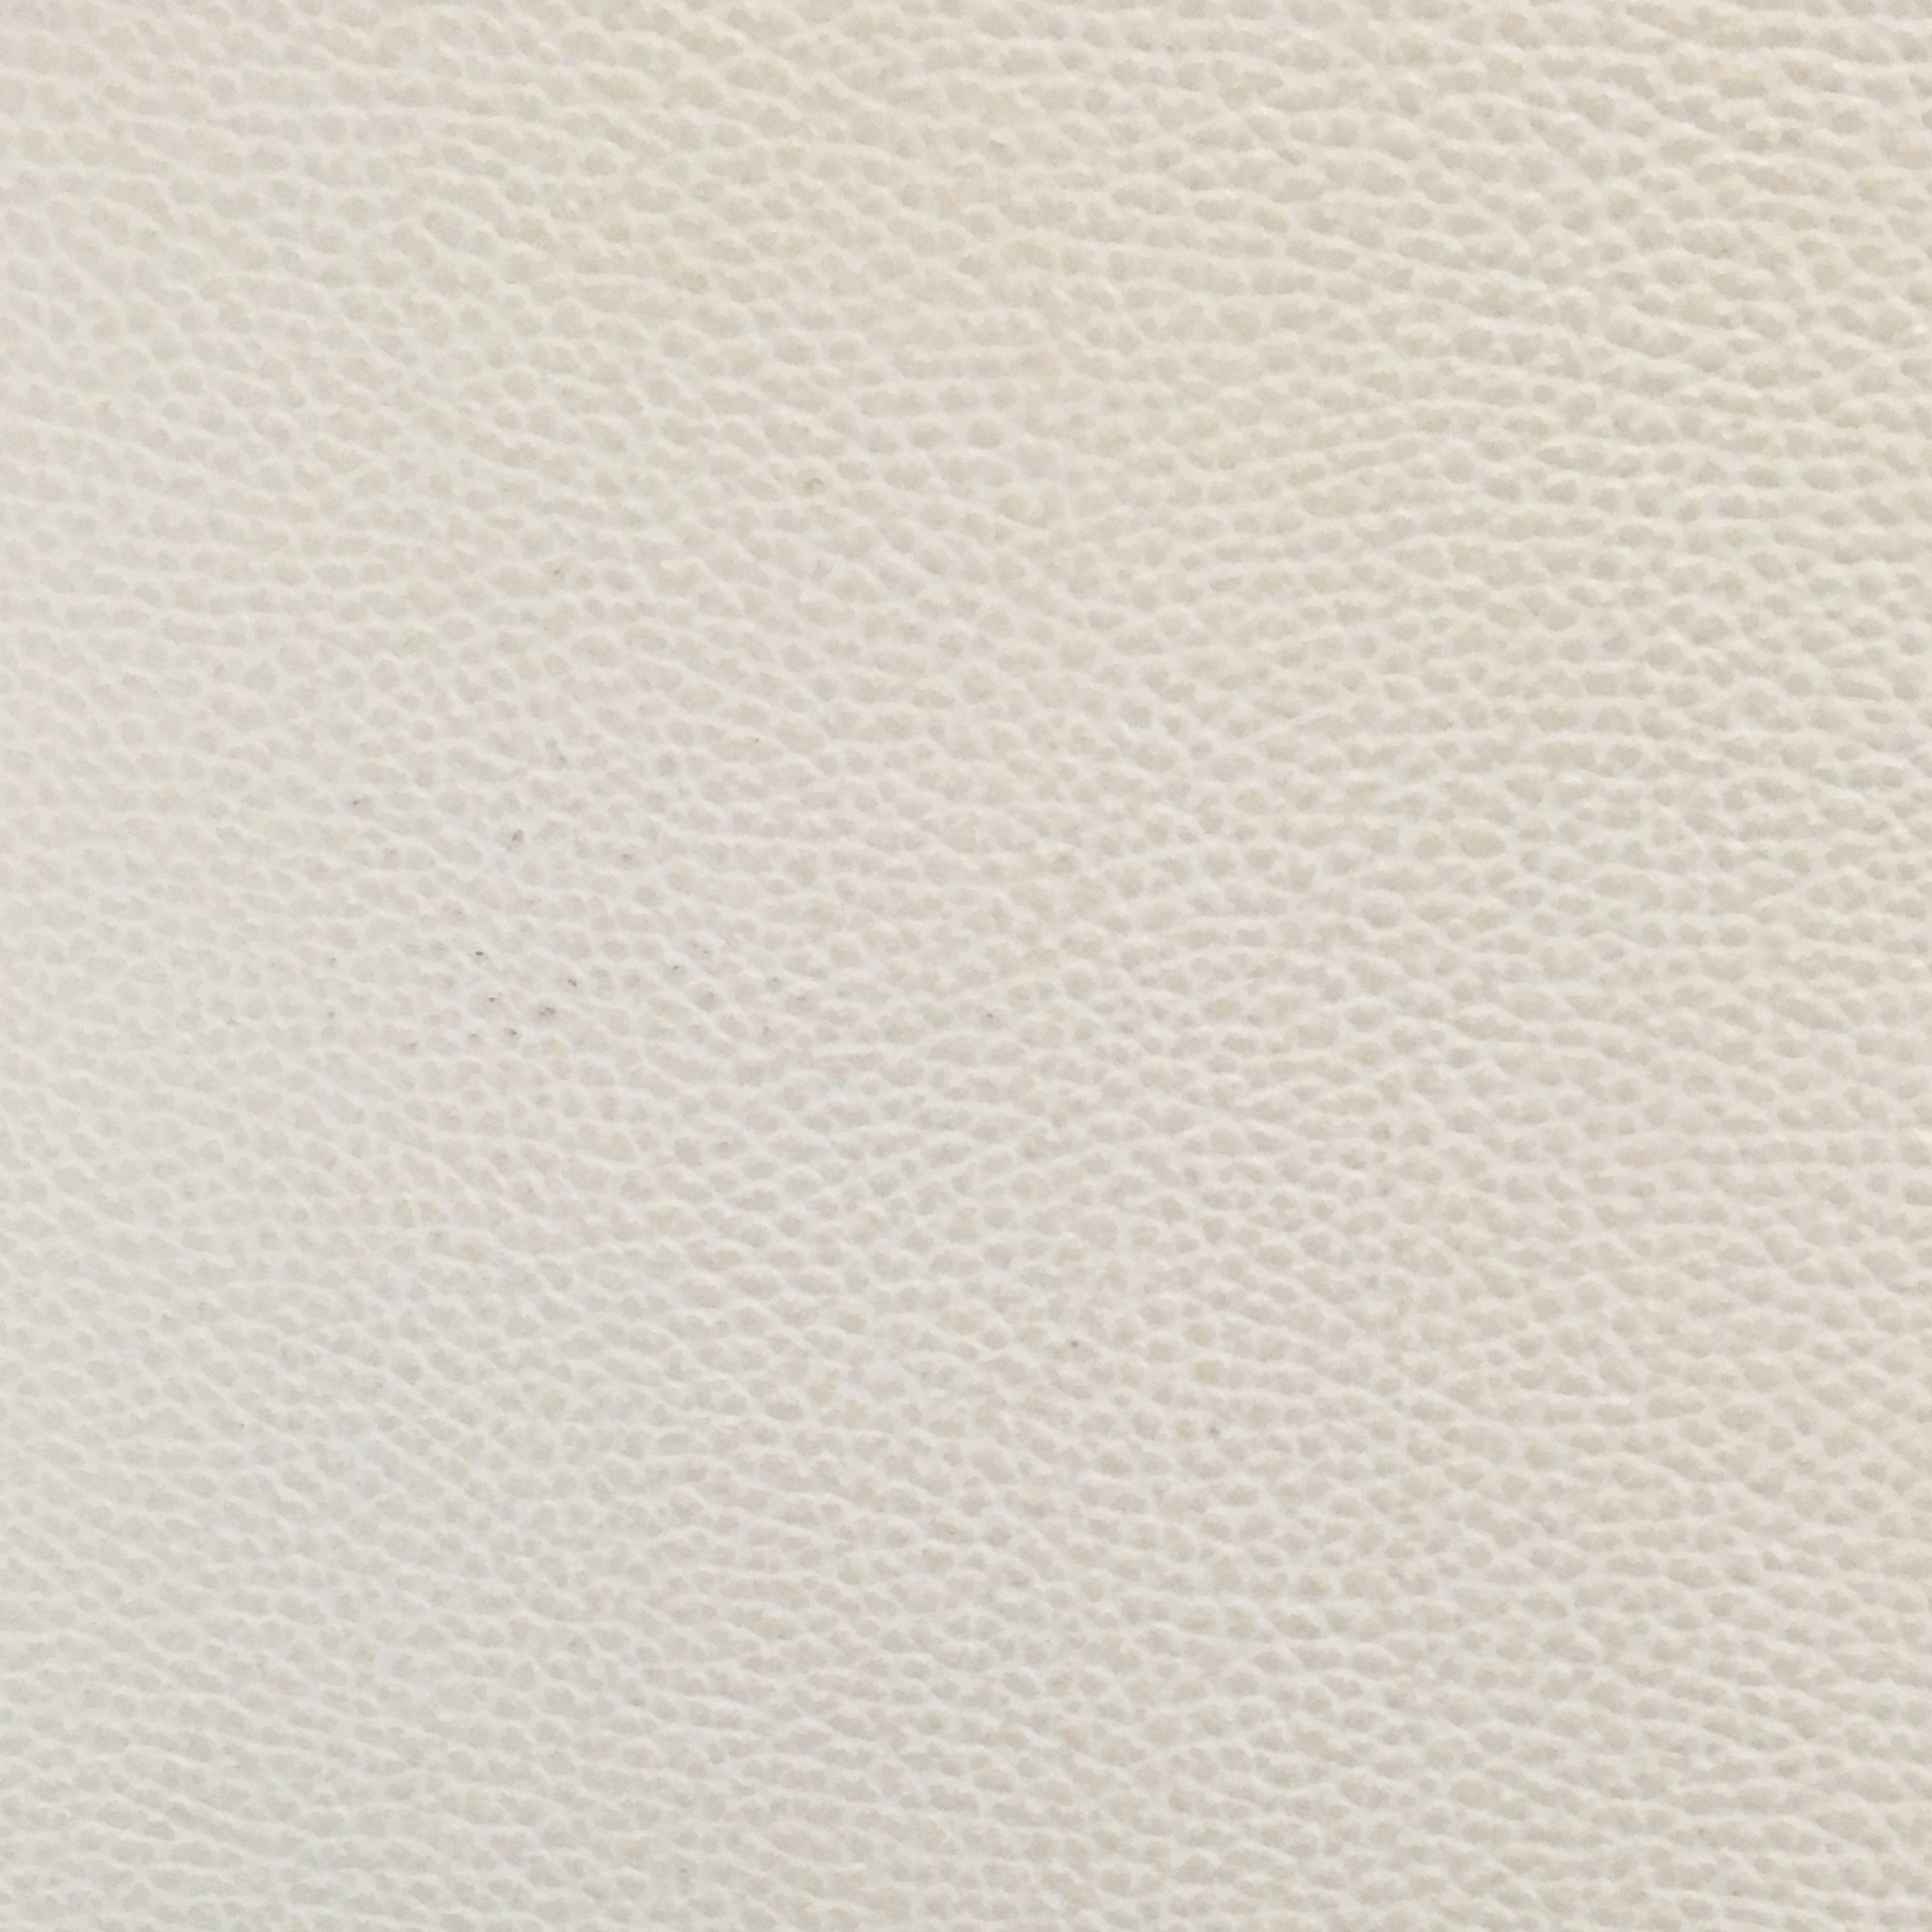 """Size: 12 x 24  Finish: Satin  Thickness: 12mm (0.47"""")  1613 sf   $3.00/ sf"""